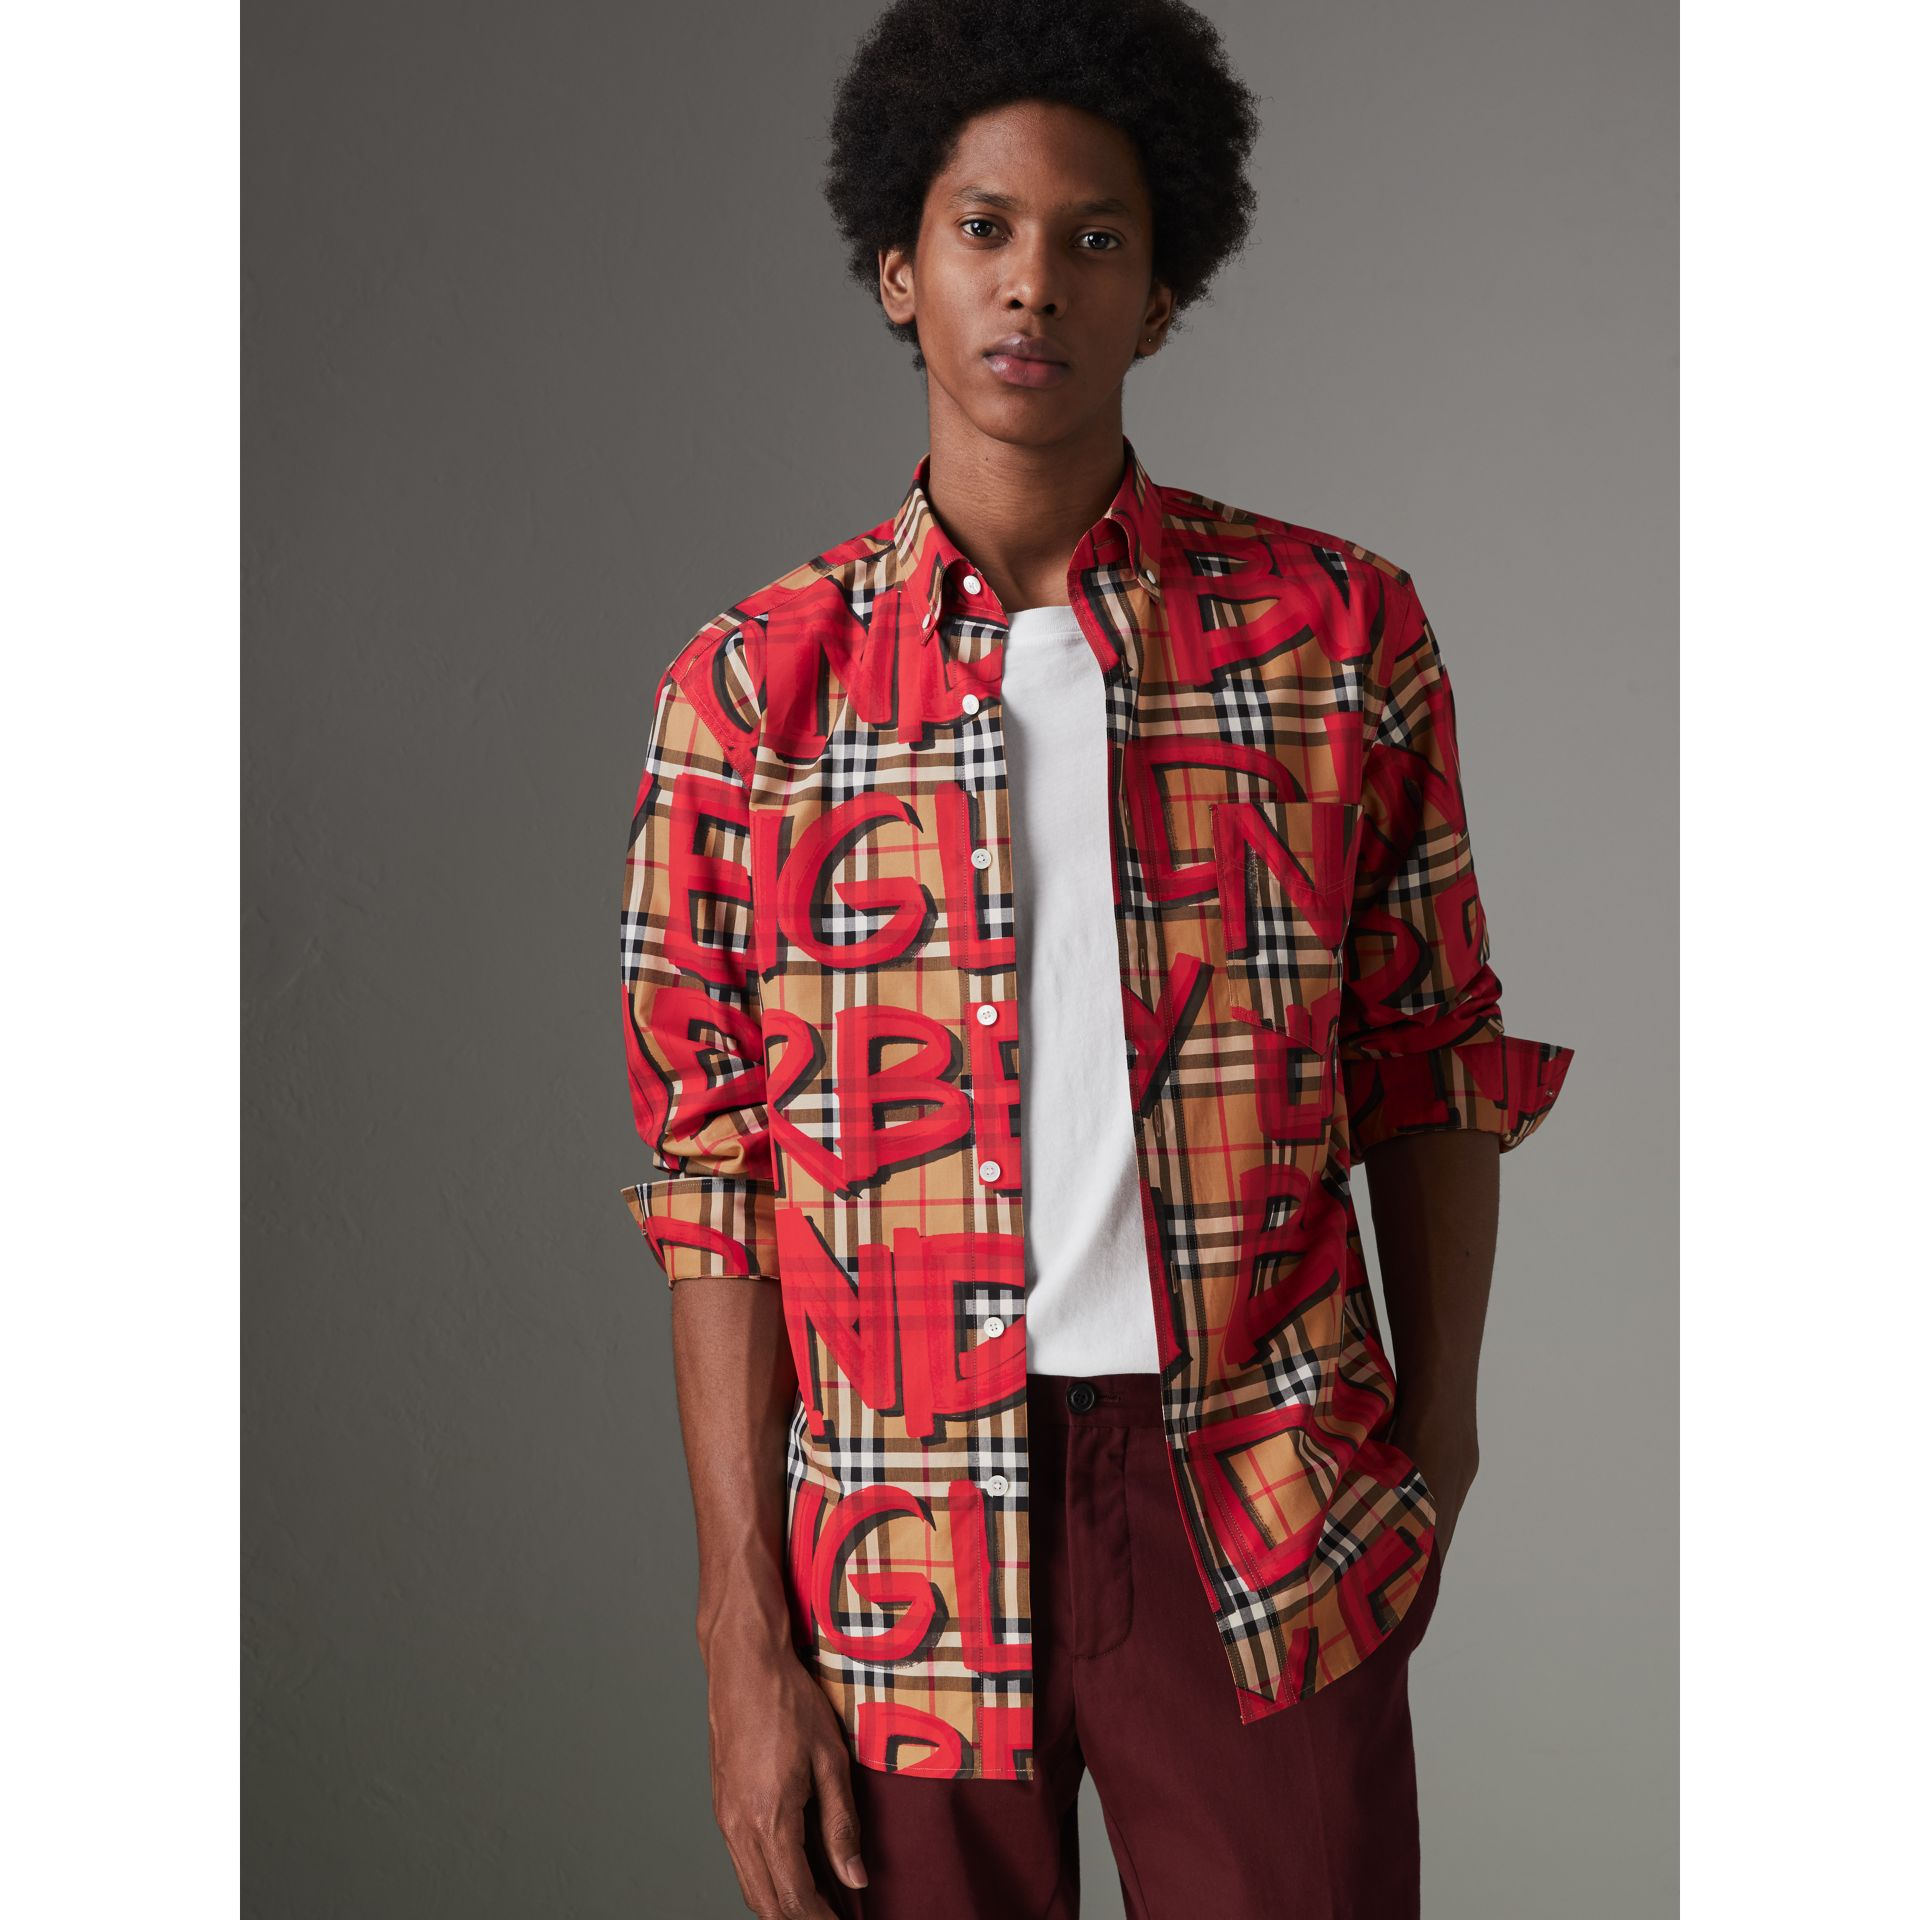 Graffiti Print Vintage Check Shirt in Bright Red - Men | Burberry - gallery image 4